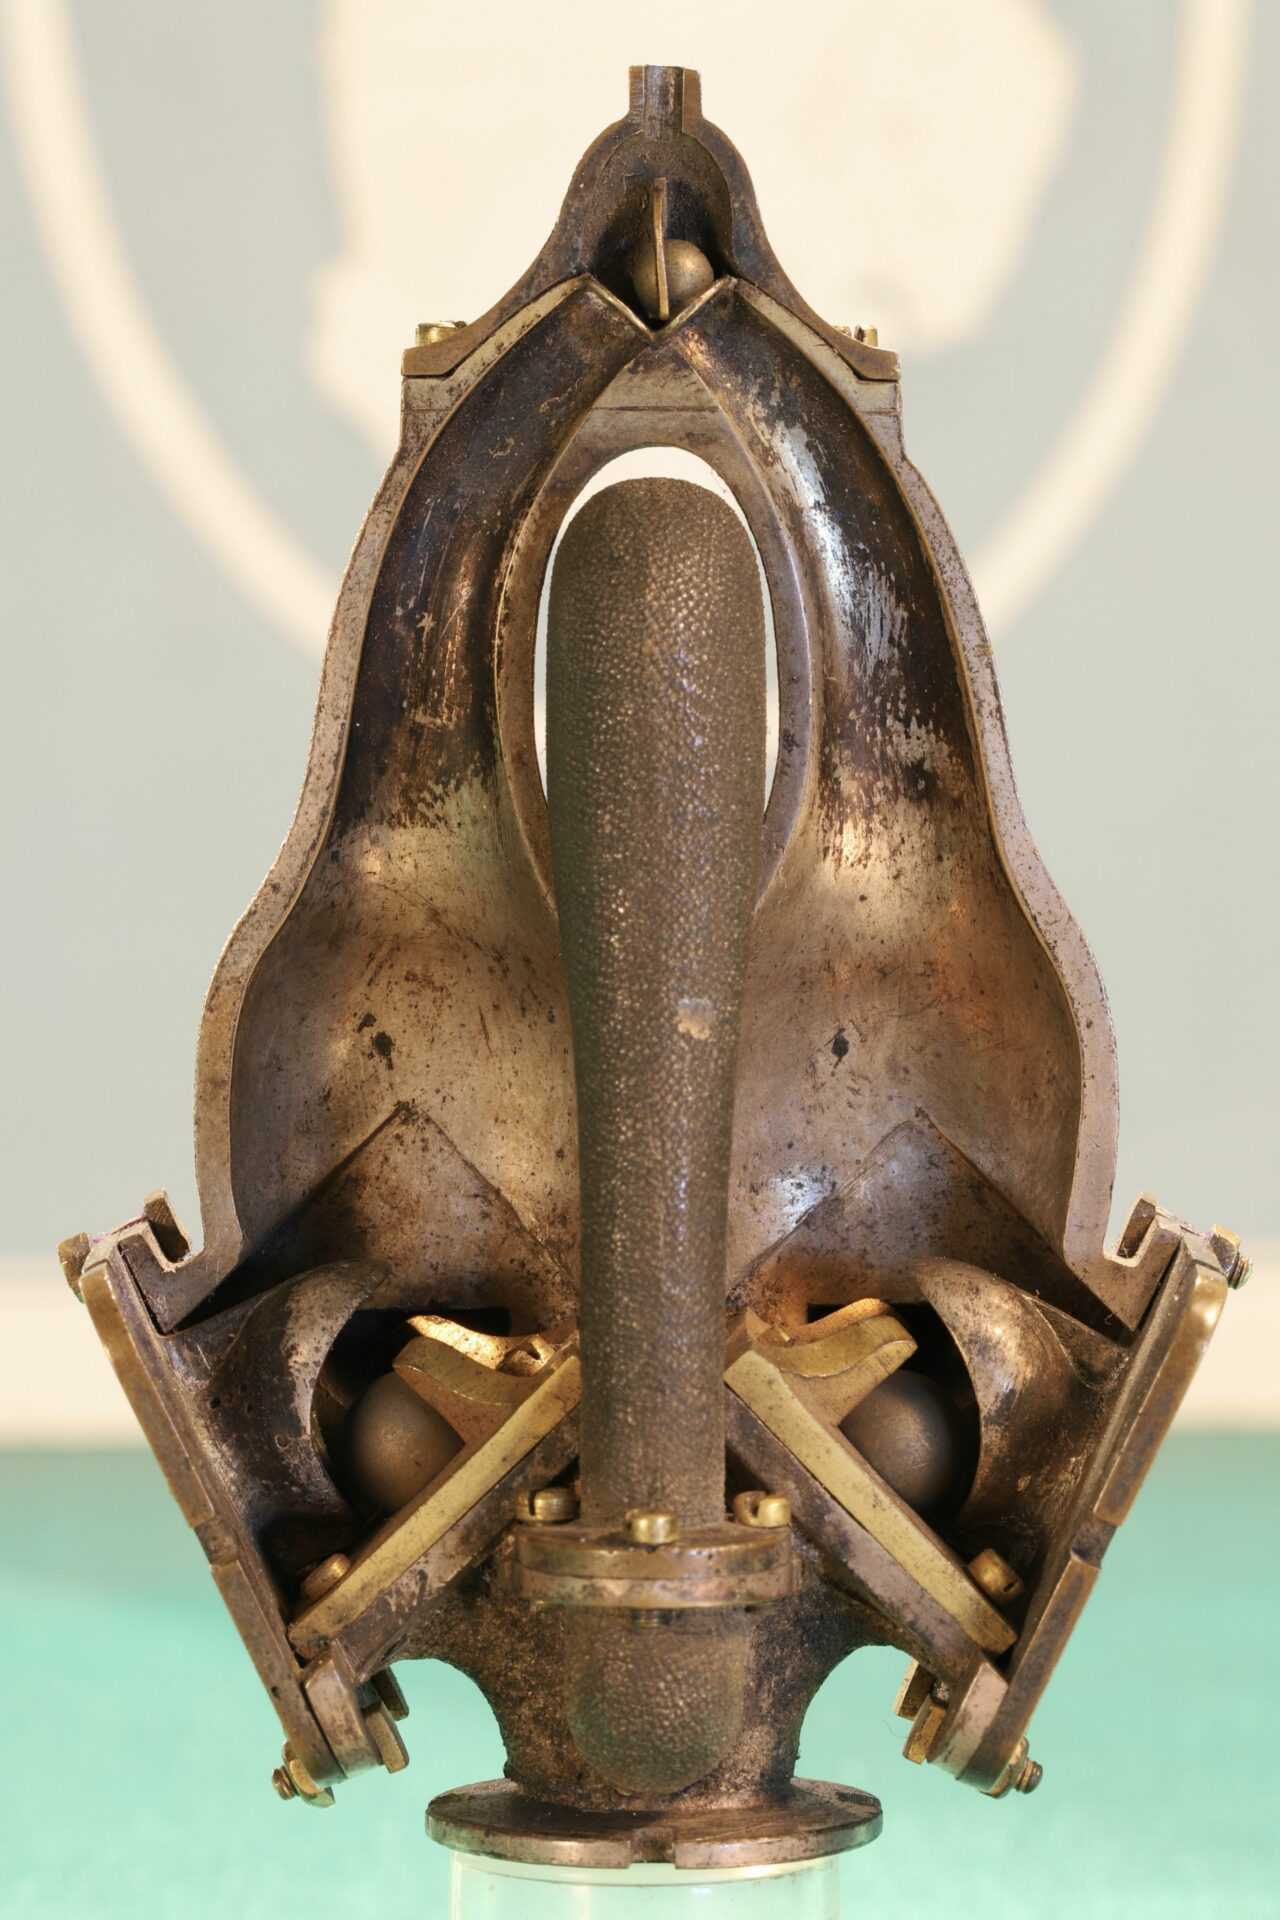 Image of rear of Pulsometer Steam Pump Model c1905